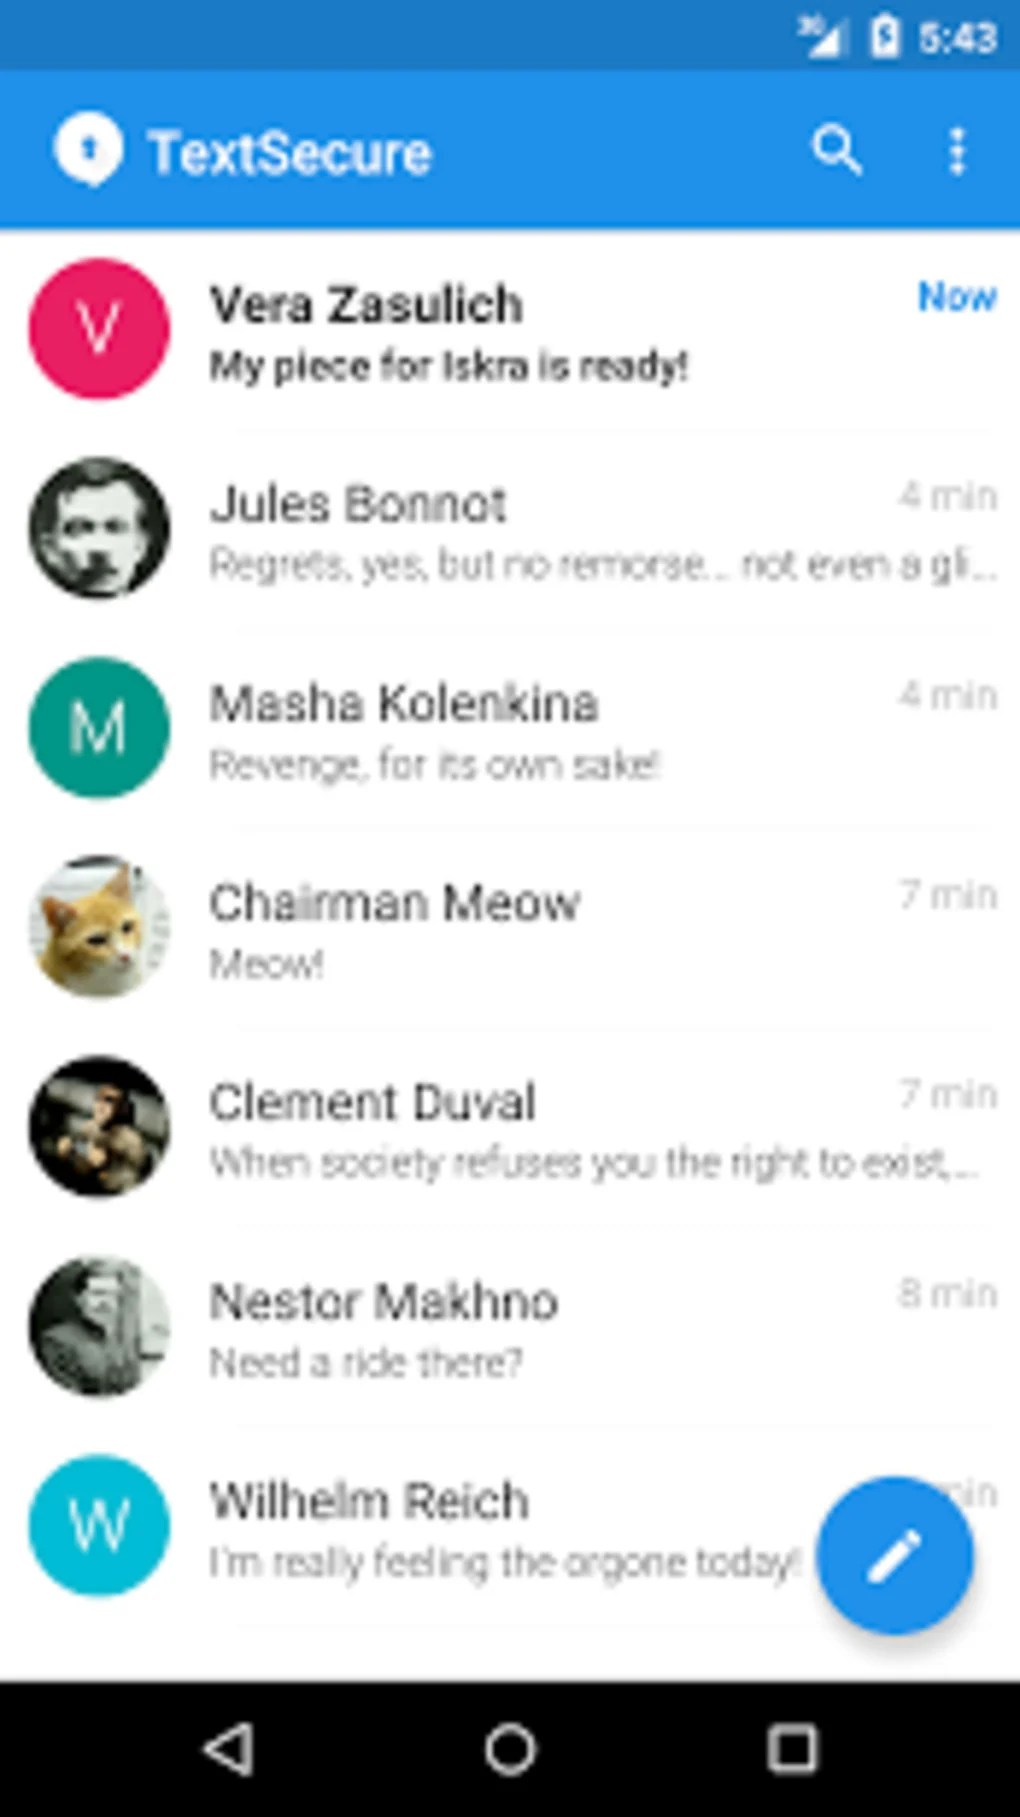 Descargar Messenger Gratis Signal Private Messenger Para Android Descargar